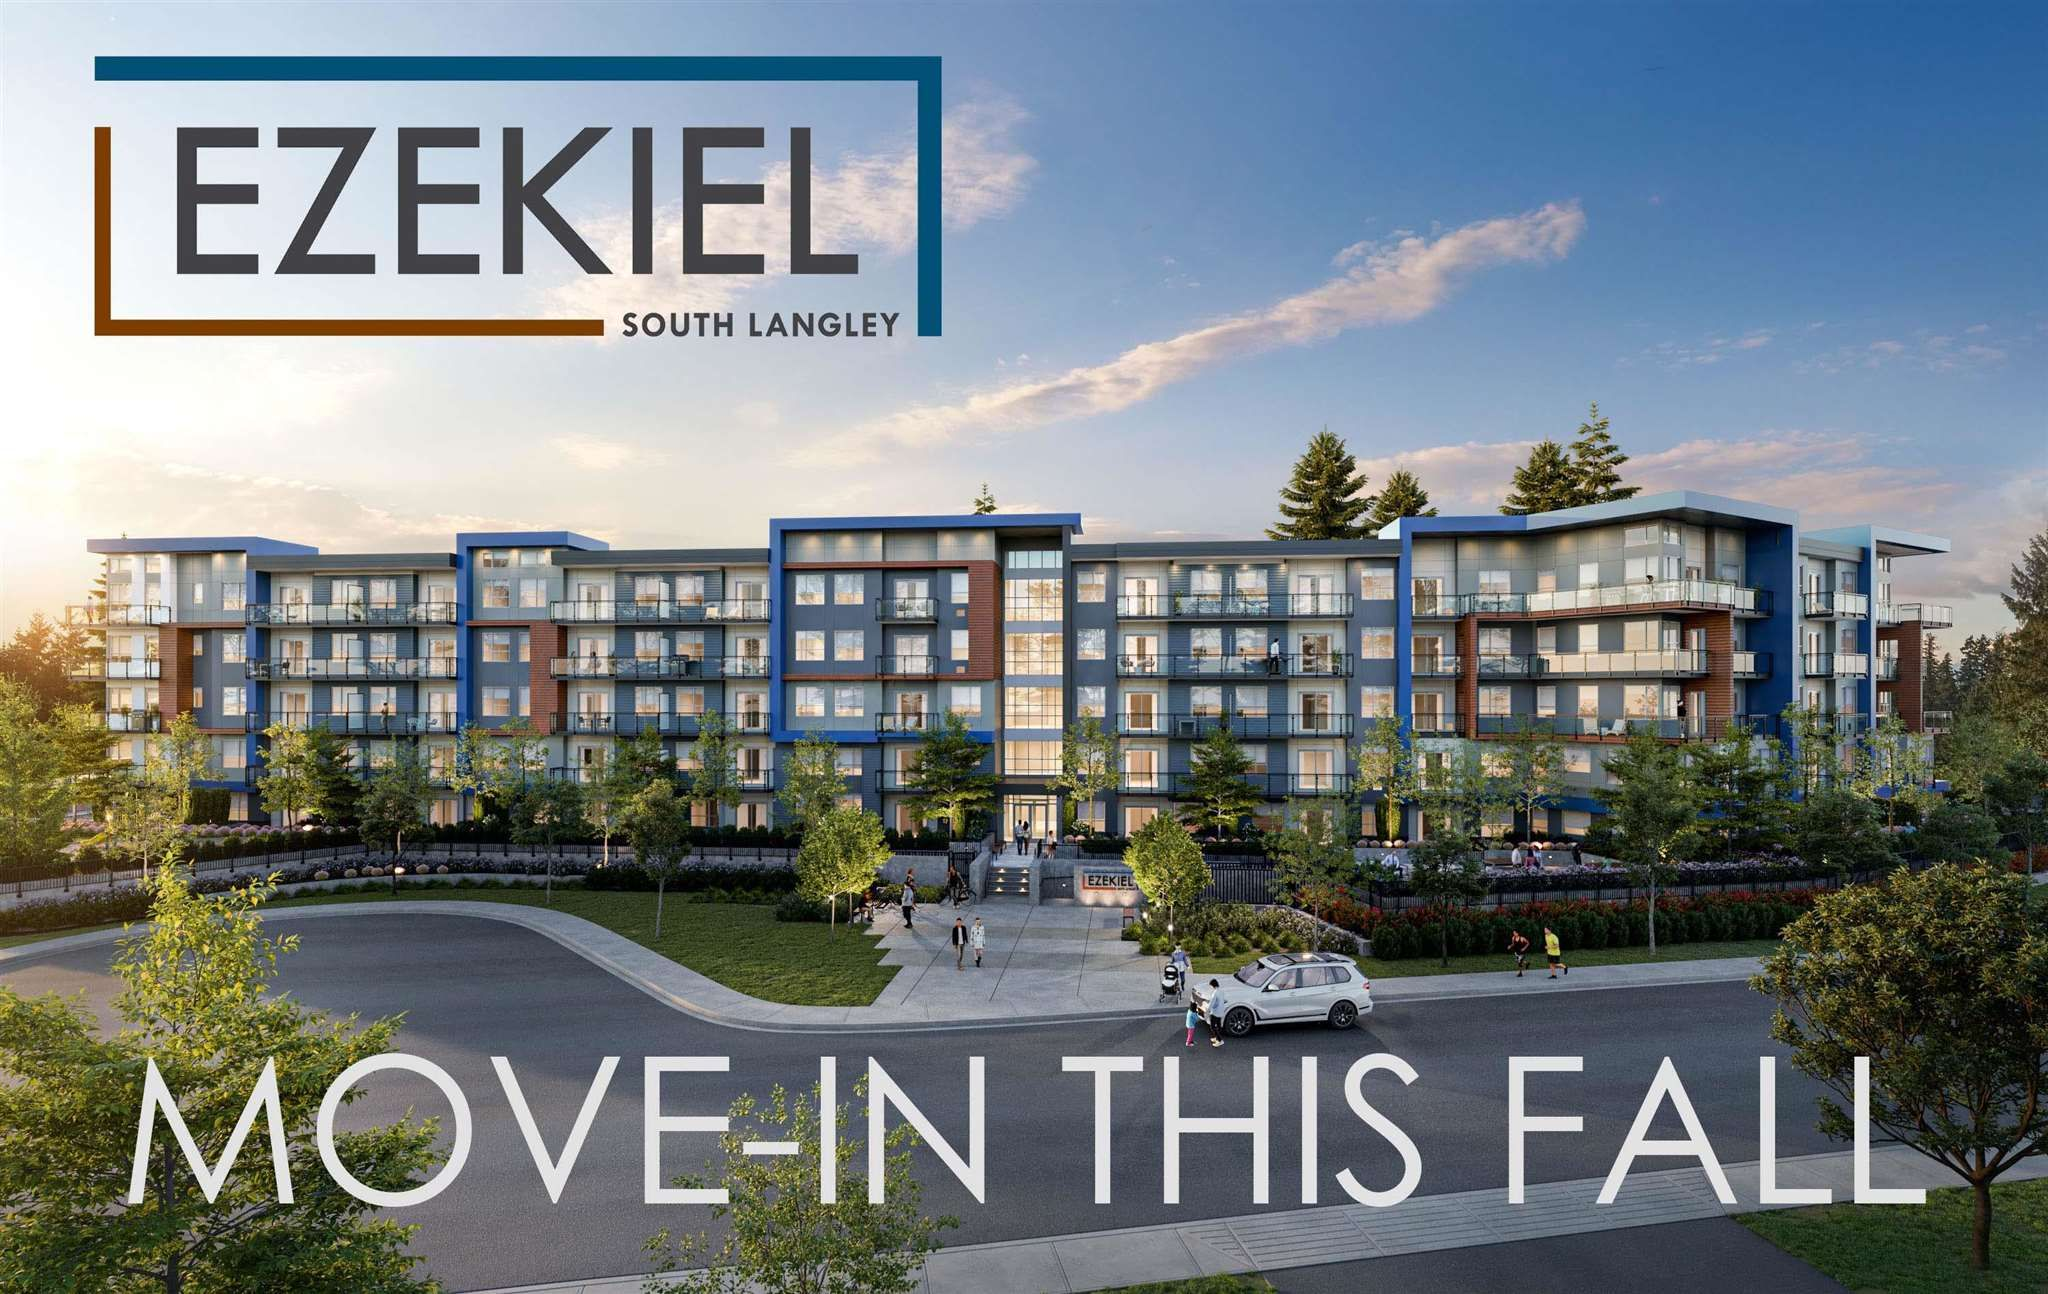 """Main Photo: 401 5486 199A Street in Langley: Langley City Condo for sale in """"Ezekiel"""" : MLS®# R2600456"""